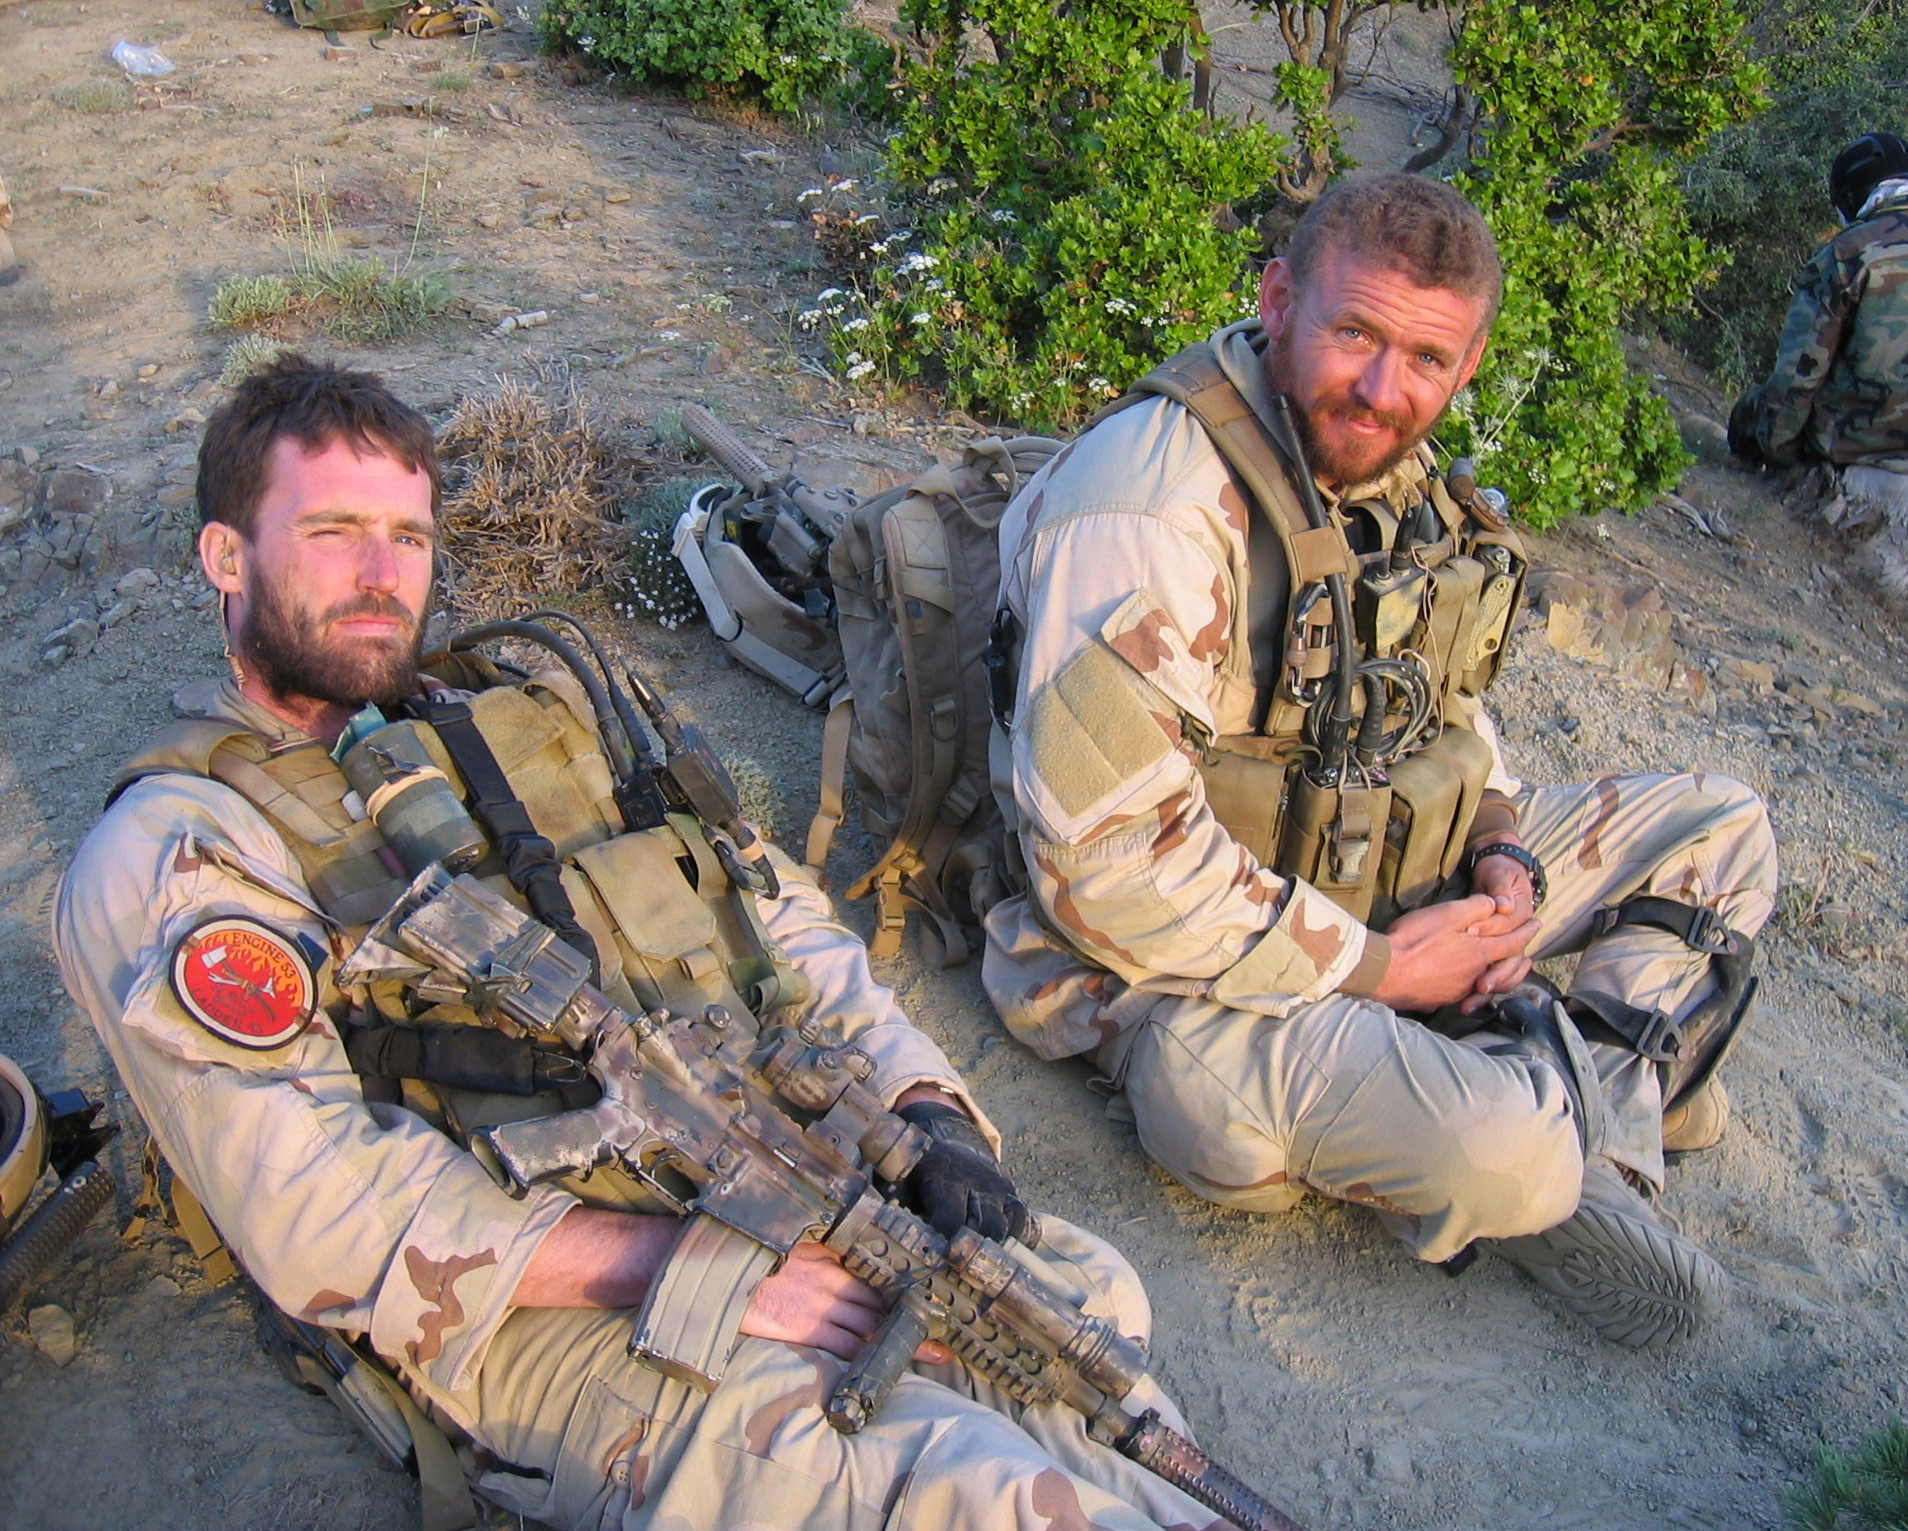 050628-N-0000X-005 Navy file photo of SEAL Lt. Michael P. Murphy, from Patchogue, N.Y., and Sonar Technician (Surface) 2nd Class Matthew G. Axelson, of Cupertino, Calif., taken in Afghanistan. Both were assigned to SEAL Delivery Vehicle Team 1, Pearl Harbor, Hawaii. Murphy and Axelson were killed by enemy forces during a reconnaissance mission, Operation Red Wing, June 28, 2005. They were part of a four-man team tasked with finding a key Taliban leader in the mountainous terrain near Asadabad, Afghanistan, when they came under fire from a much larger enemy force with superior tactical position. U.S. Navy photo (RELEASED)